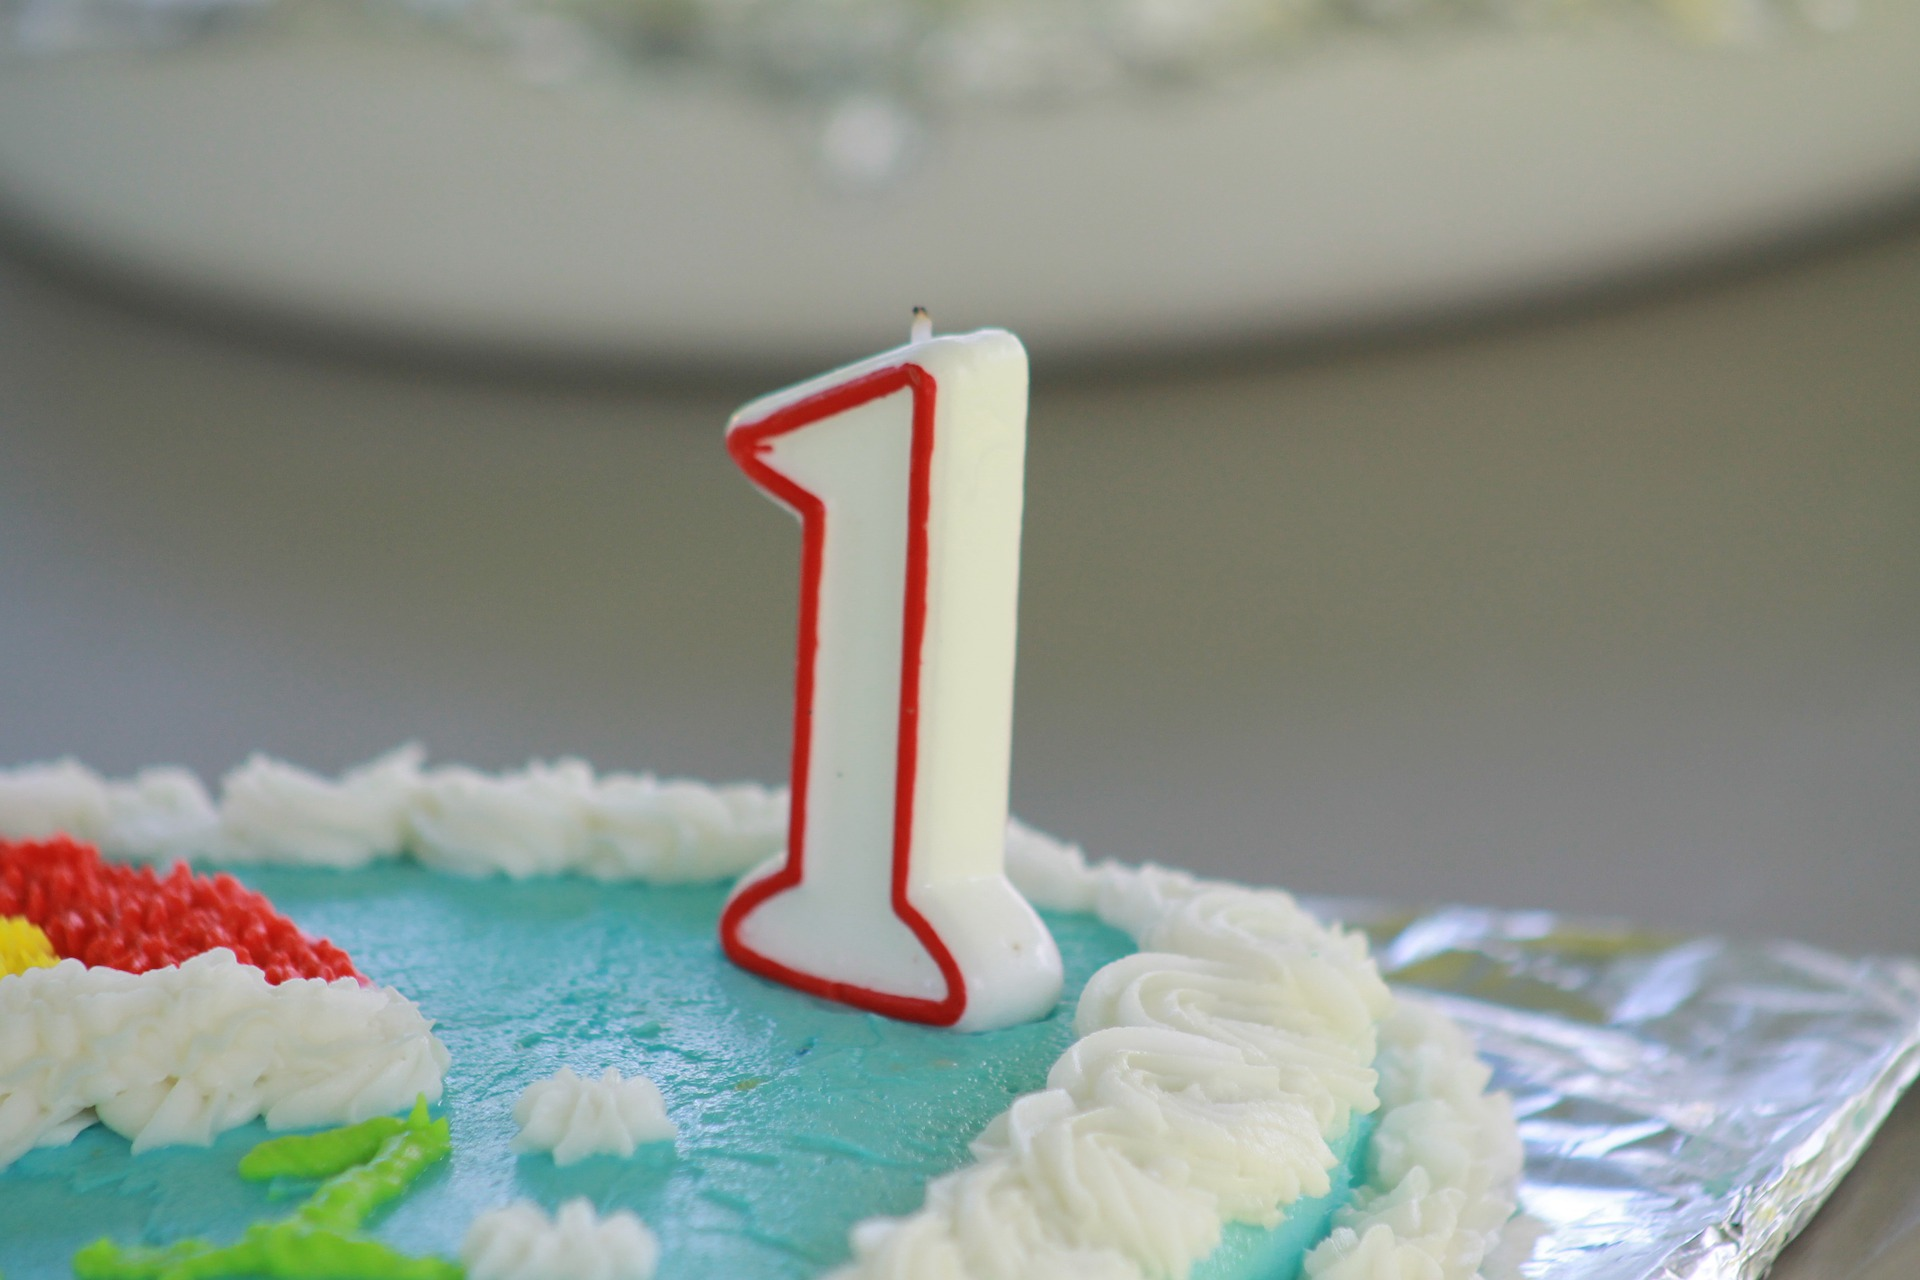 TSS Visa now One Year Old